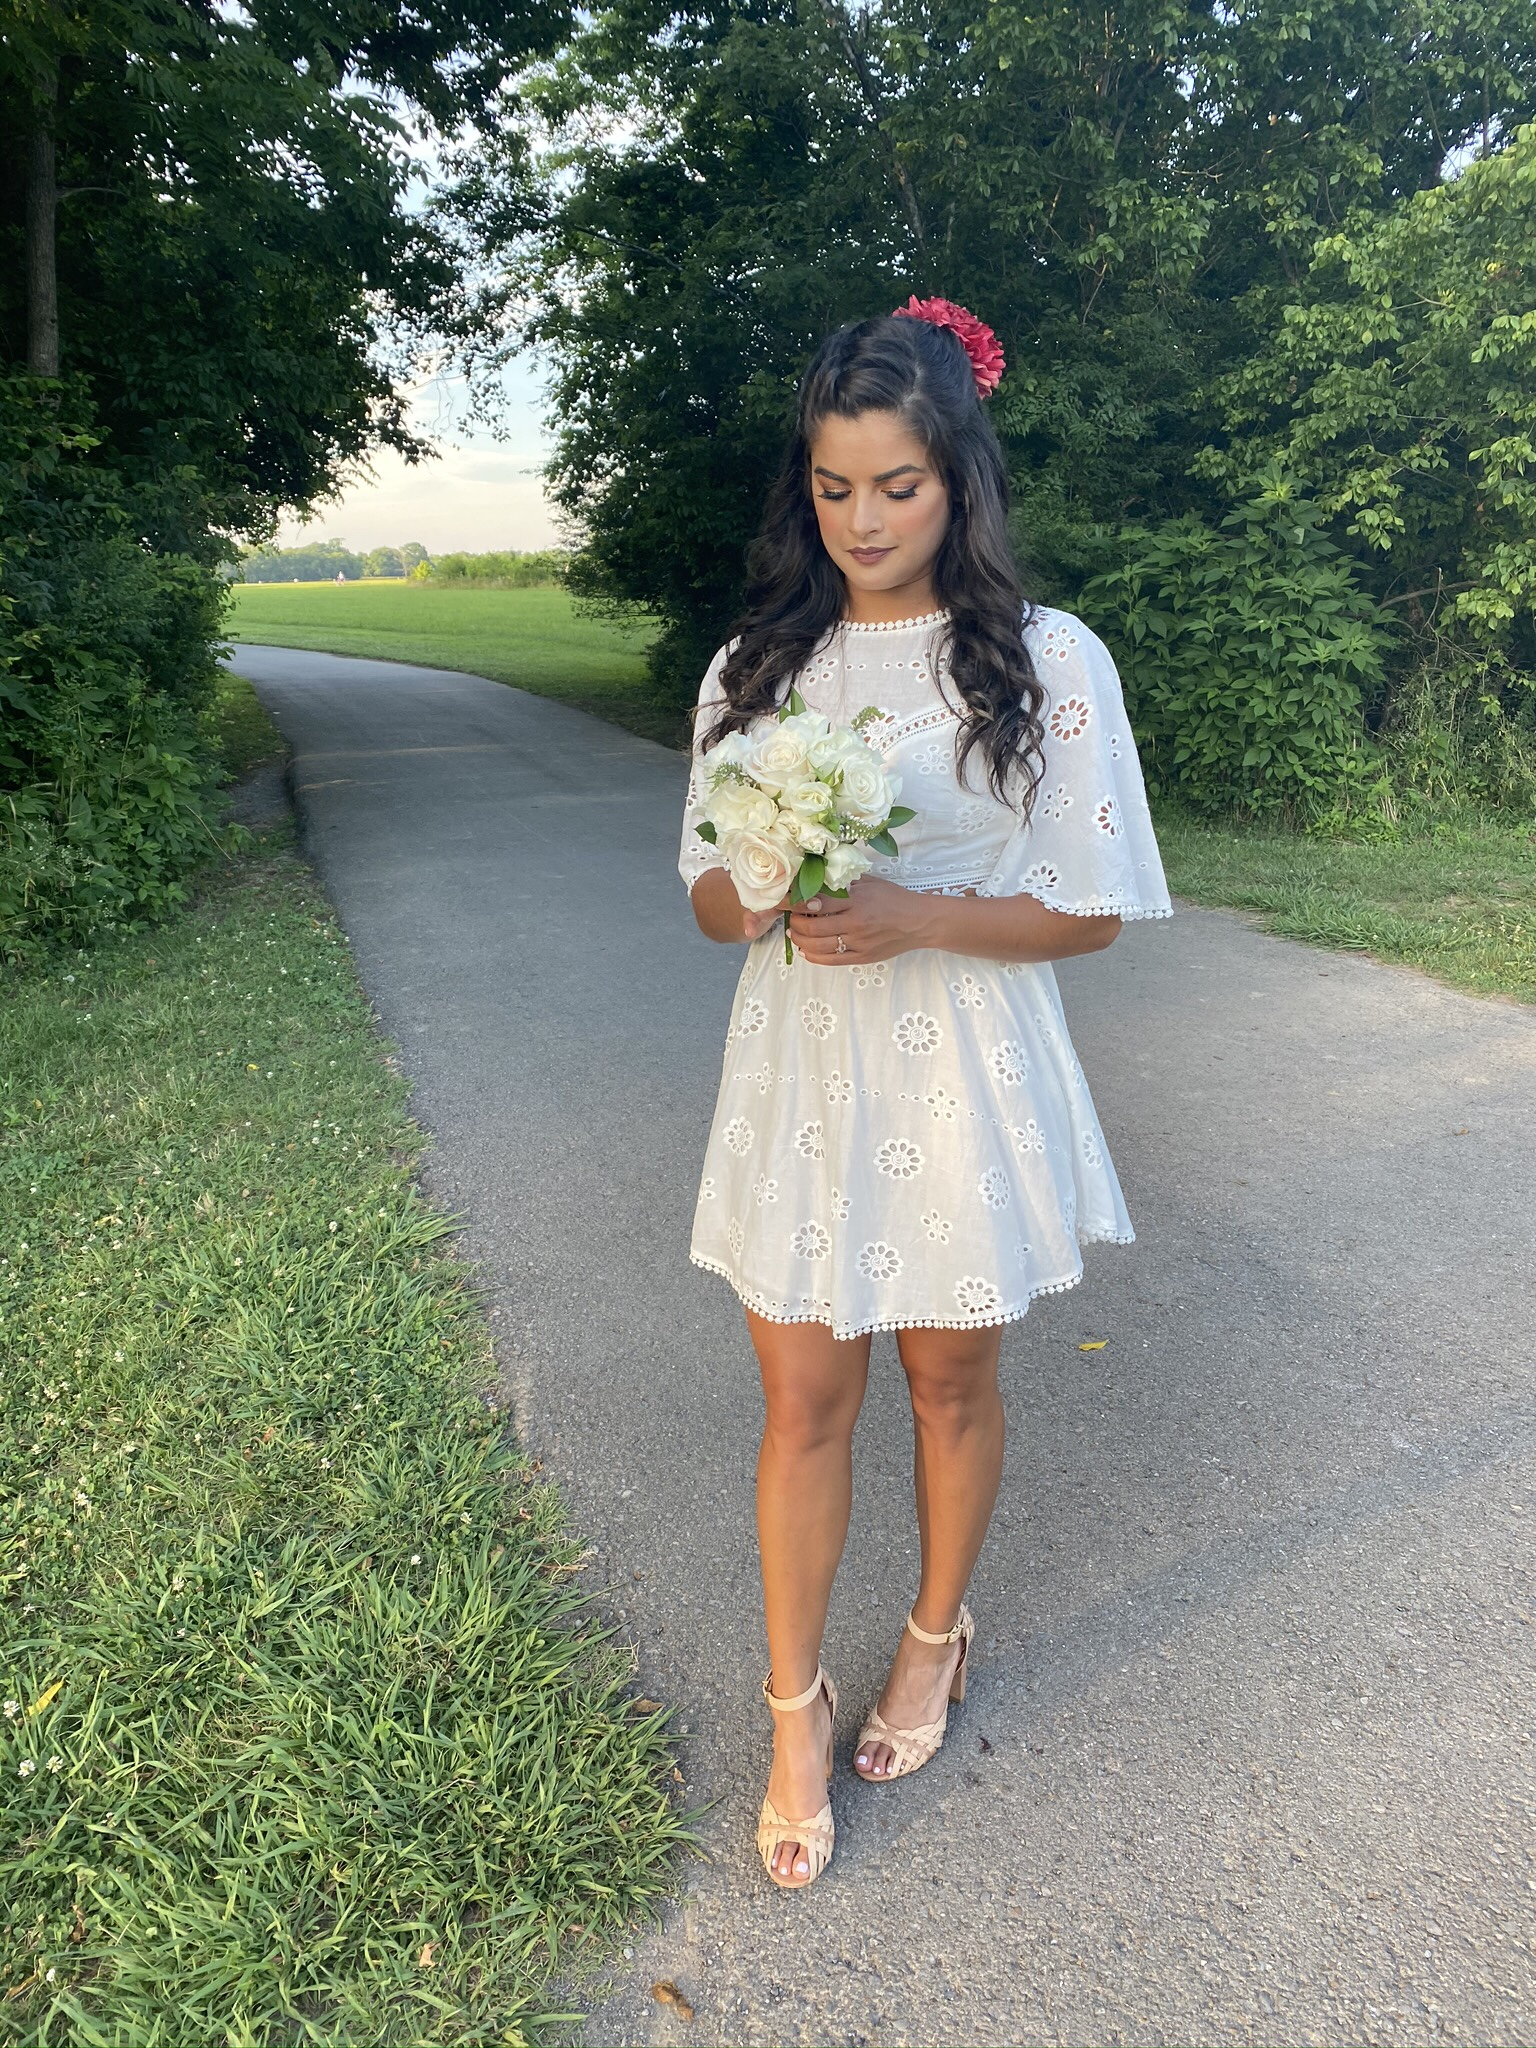 Priya the Blog, Nashville lifestyle blog, Nashville lifestyle blogger, Nashville wedding, Quarantine wedding, Covid-19 wedding, outdoor wedding, DIY wedding, Nashville wedding planning, Nashville wedding ideas